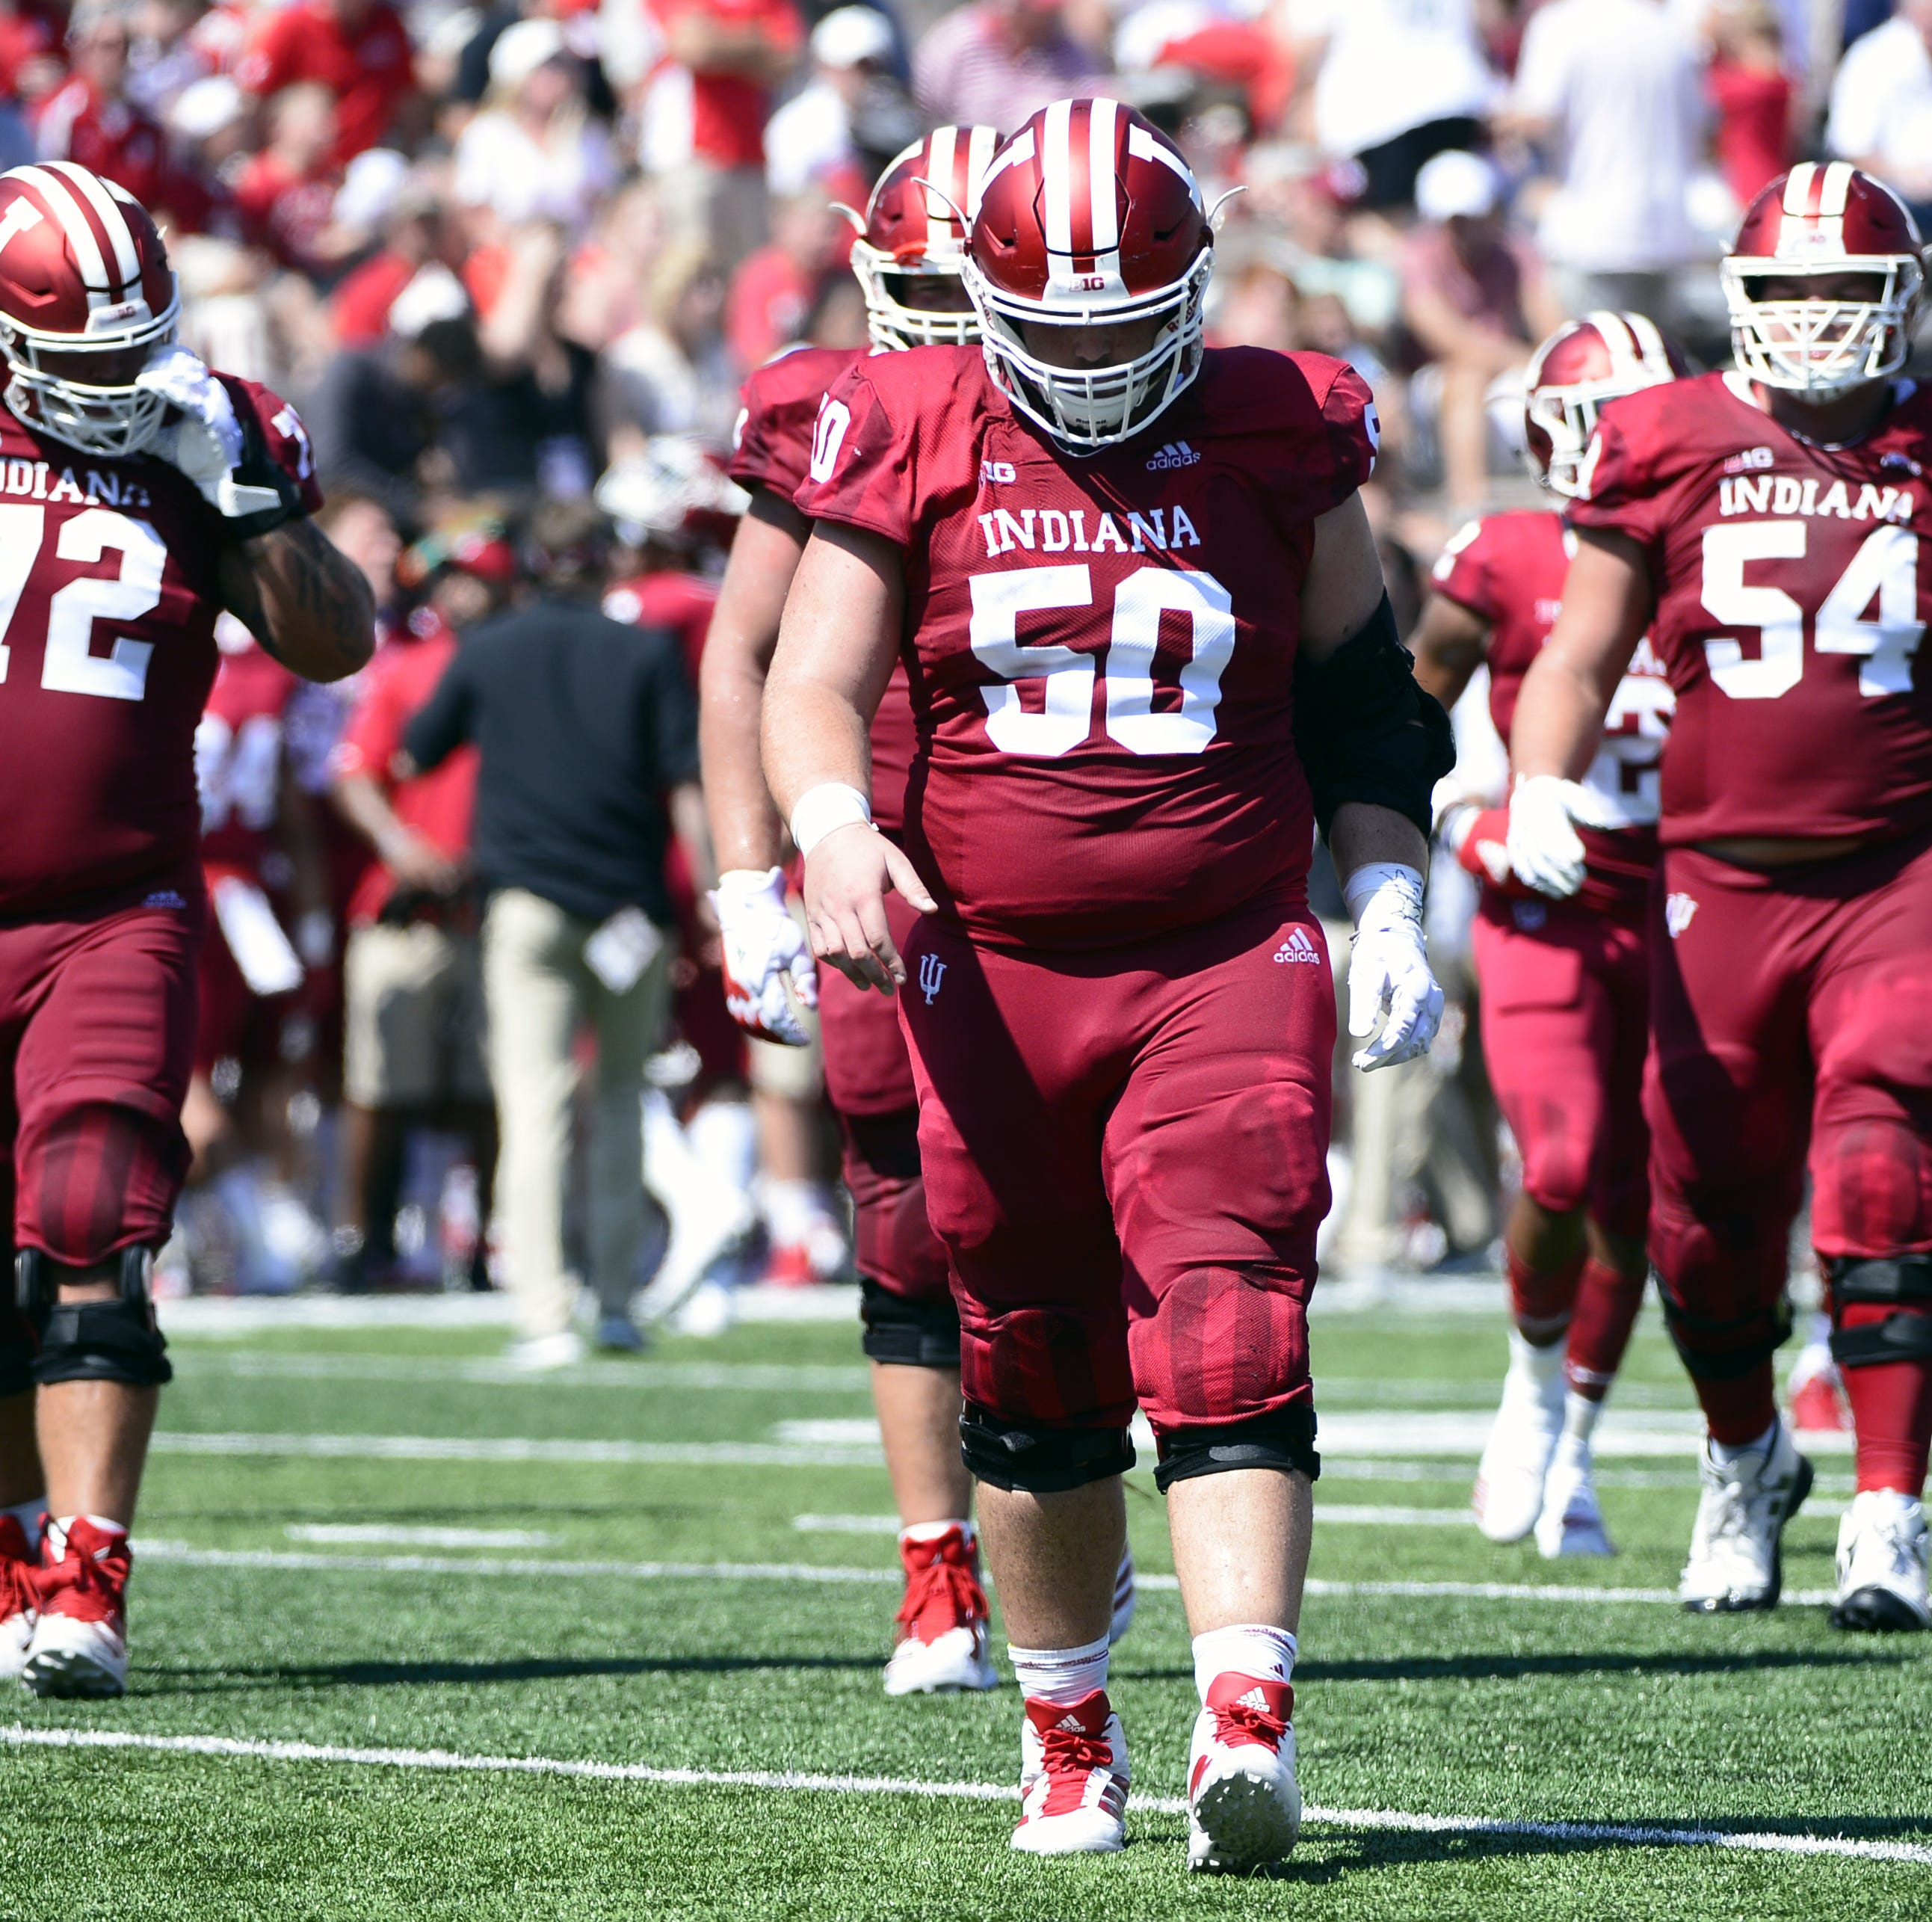 Michigan State will test legitimacy of IU football's offensive line's progress